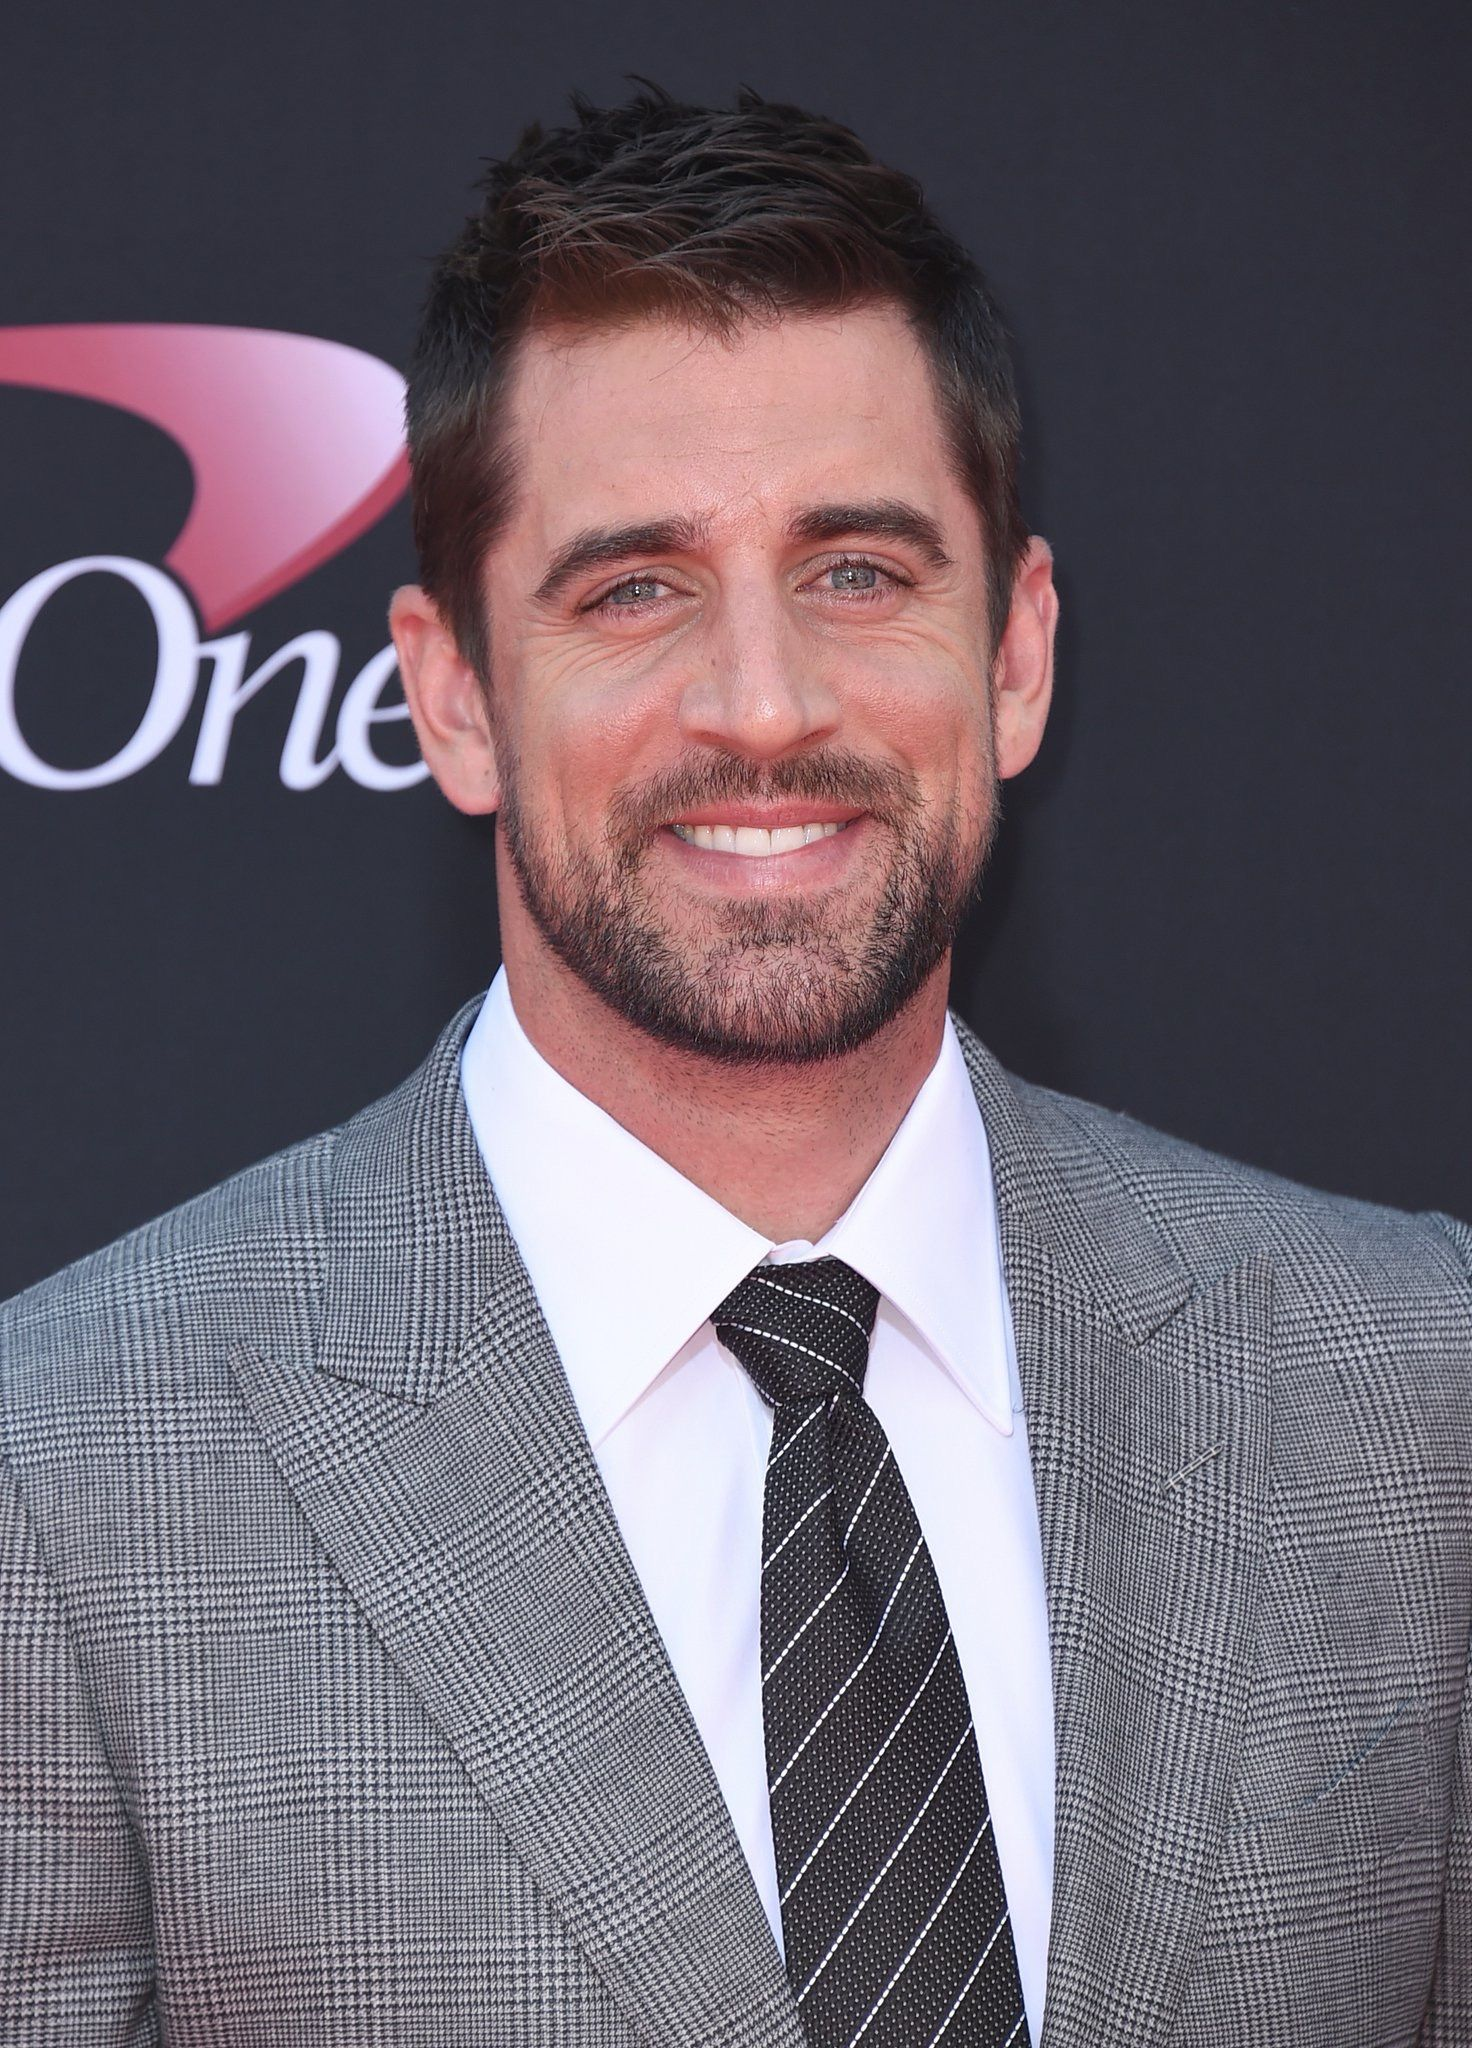 What A Stud Green Bay Packers Crafts Green Bay Packers Rodgers Green Bay